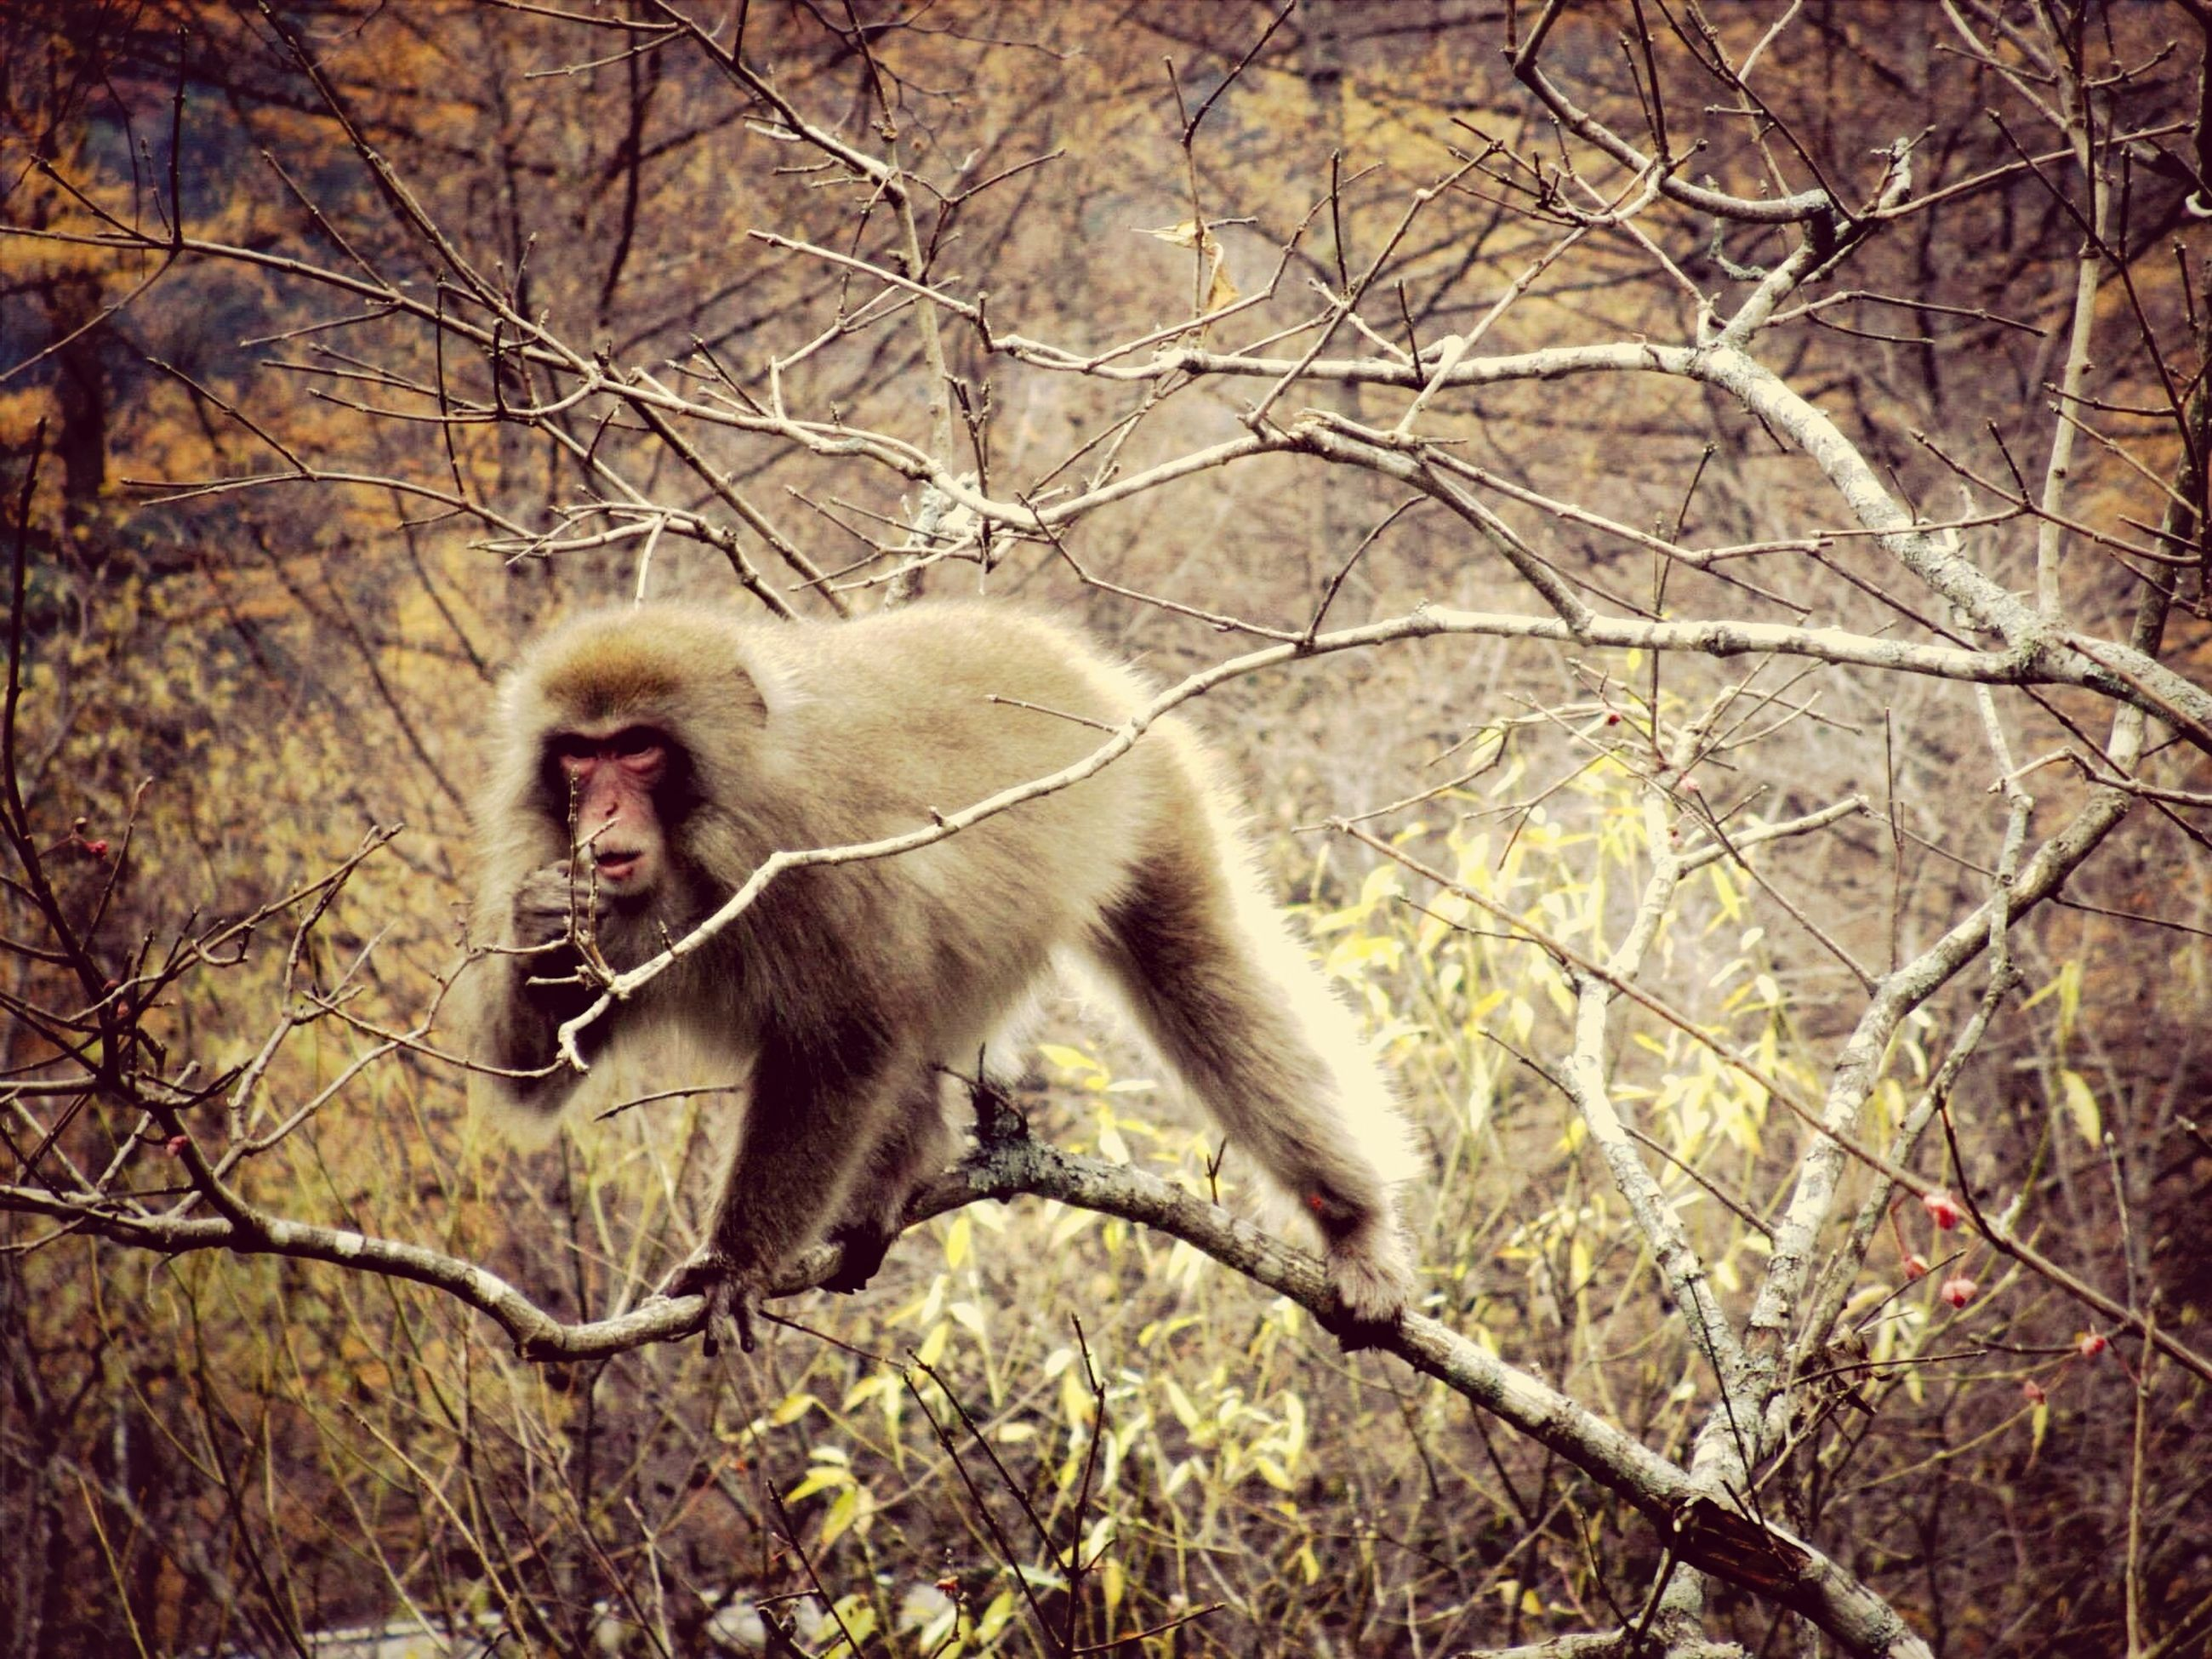 animal themes, tree, branch, mammal, one animal, wildlife, bare tree, animals in the wild, full length, nature, forest, tree trunk, monkey, day, outdoors, sitting, standing, young animal, field, no people